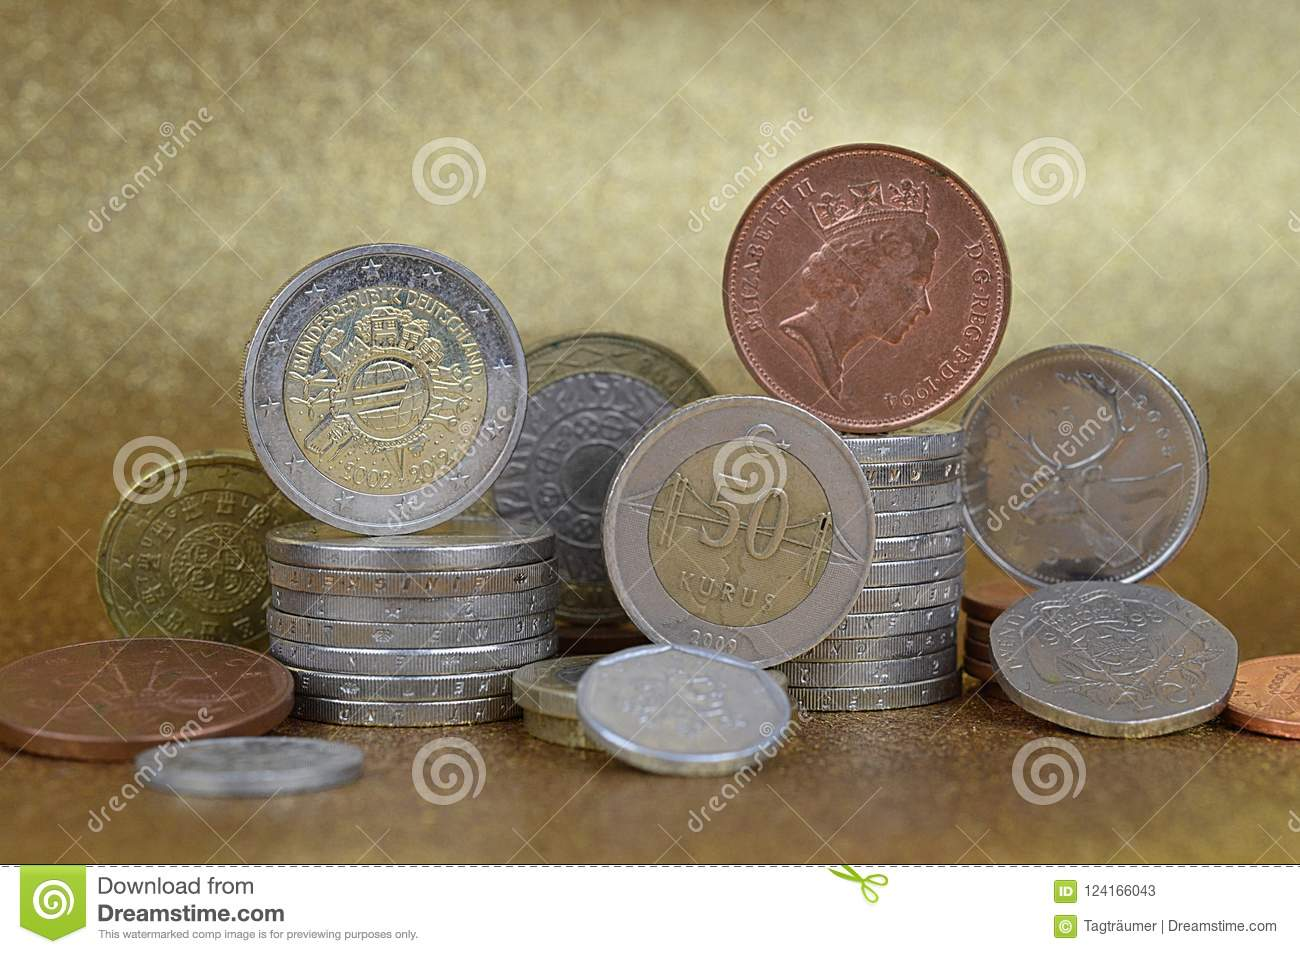 Stacks of coins from different nations